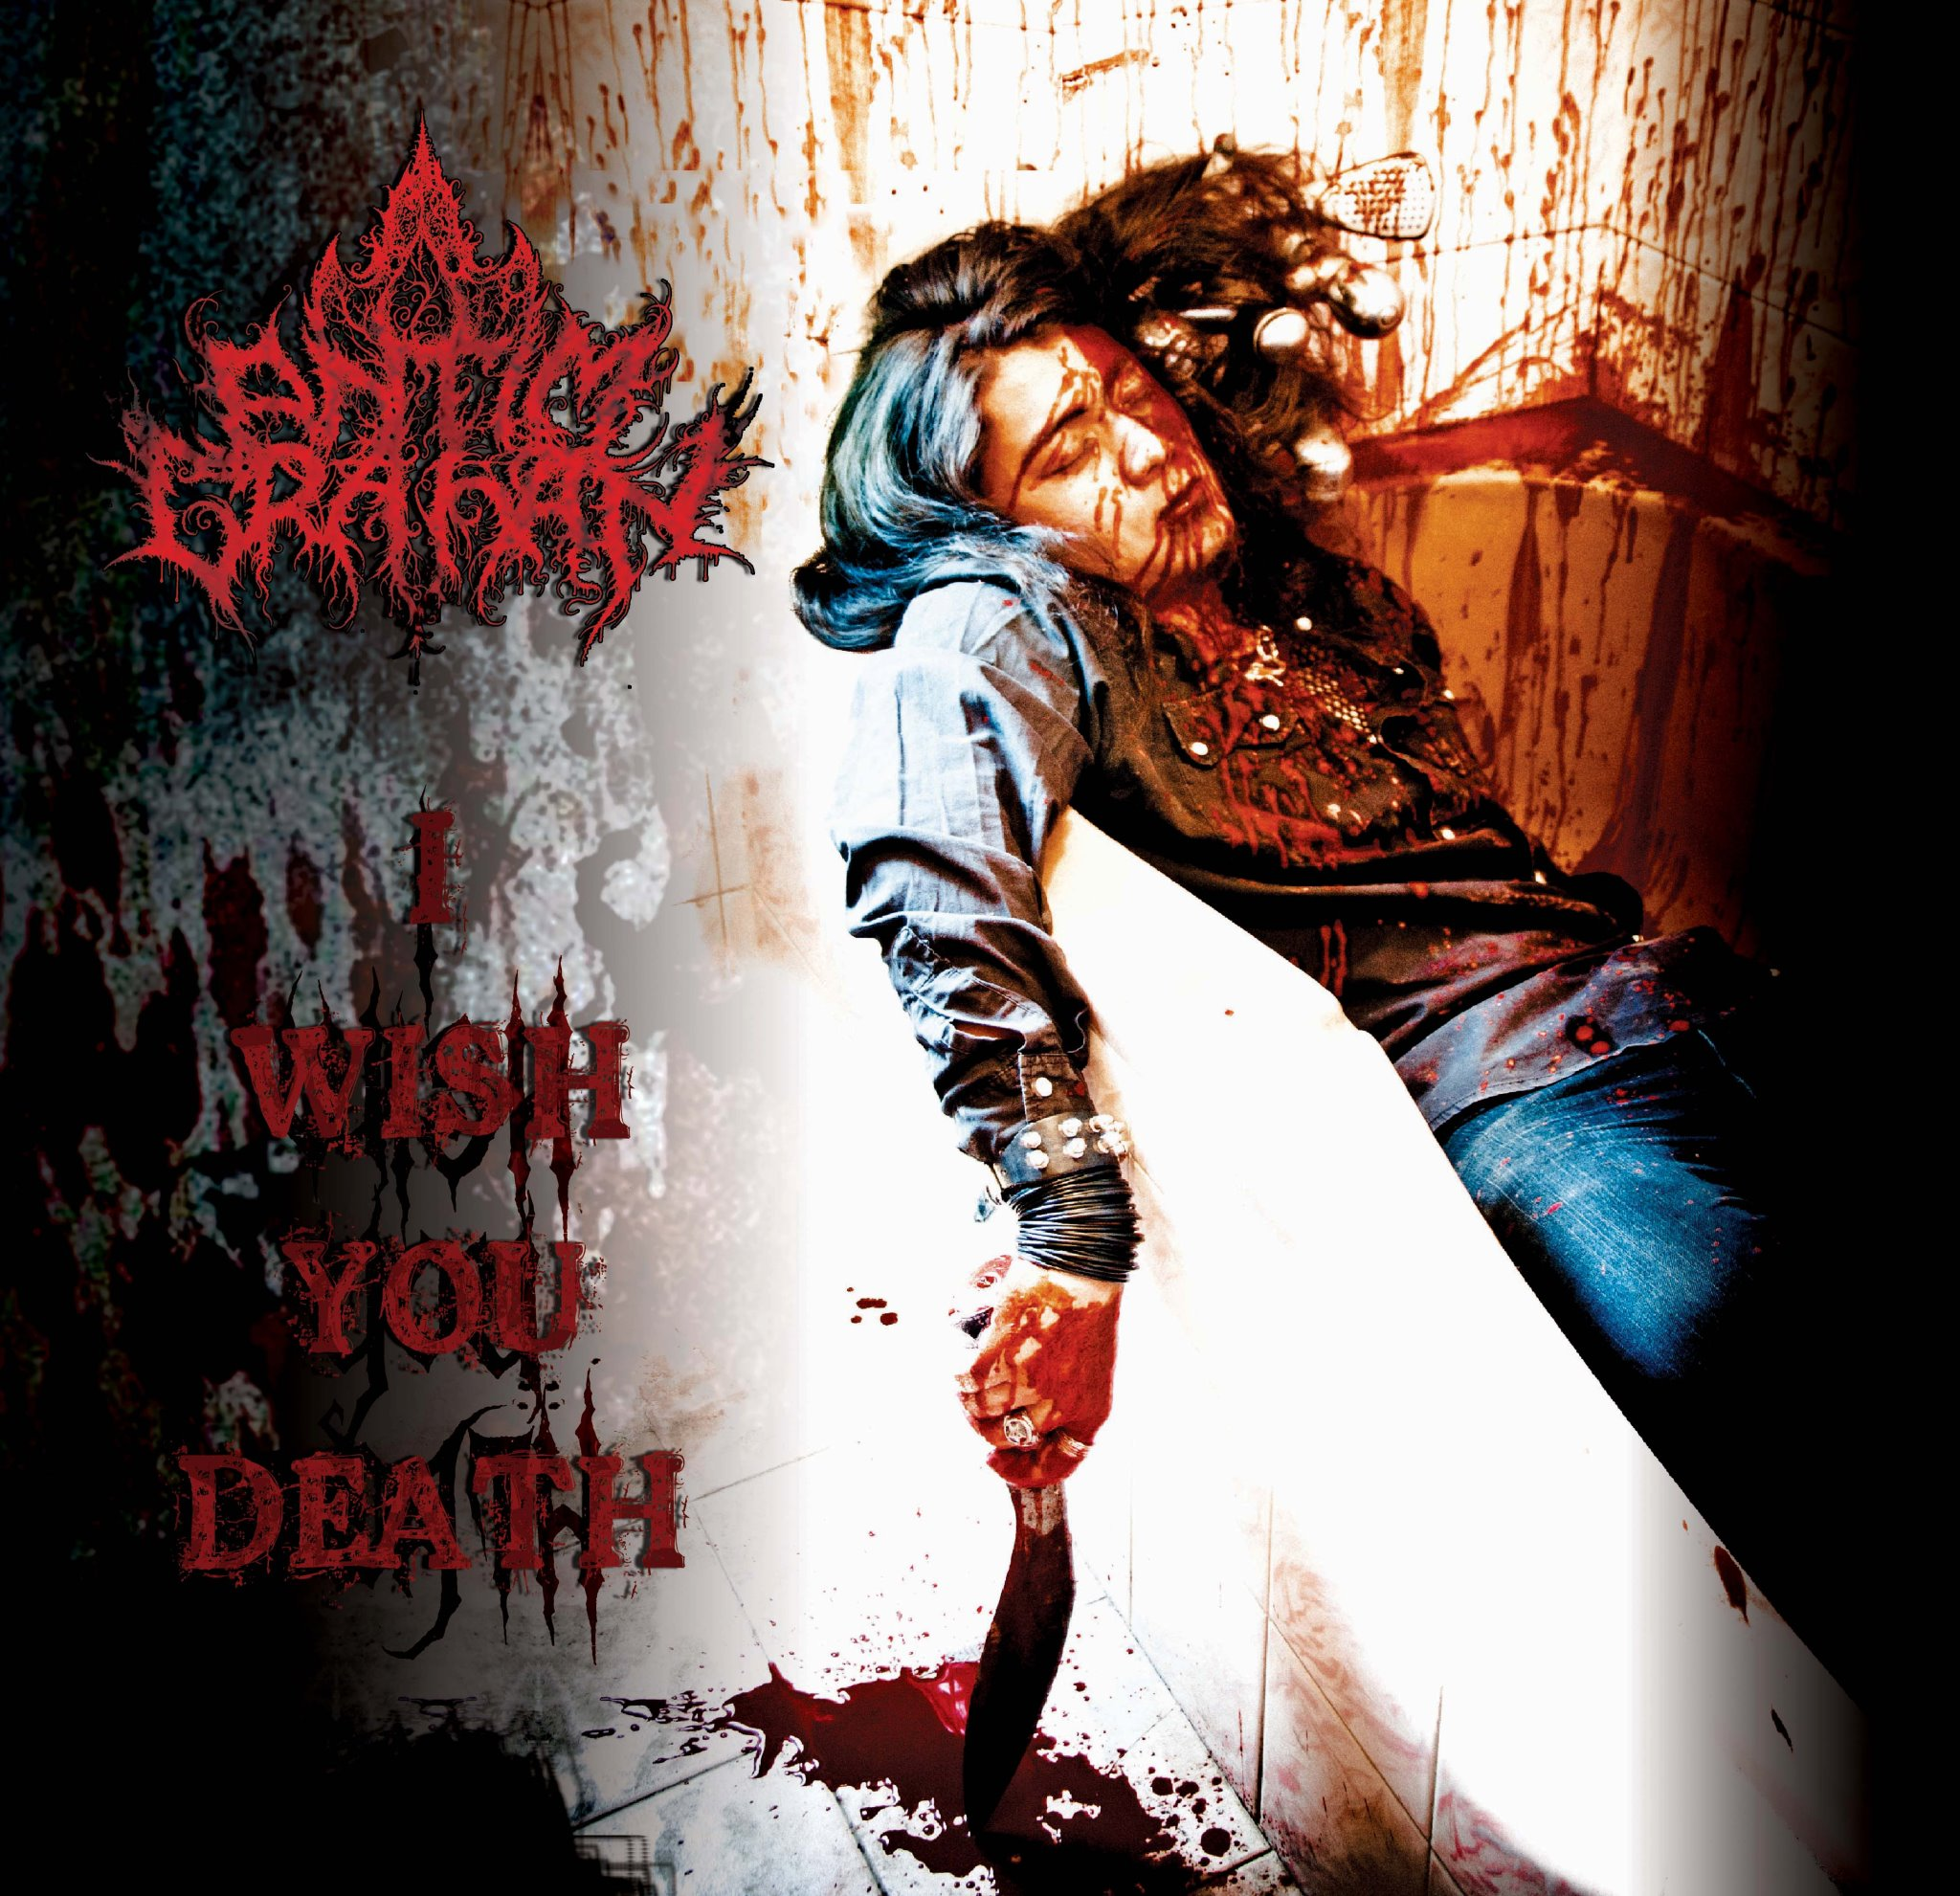 antim grahan i wish you death album cover